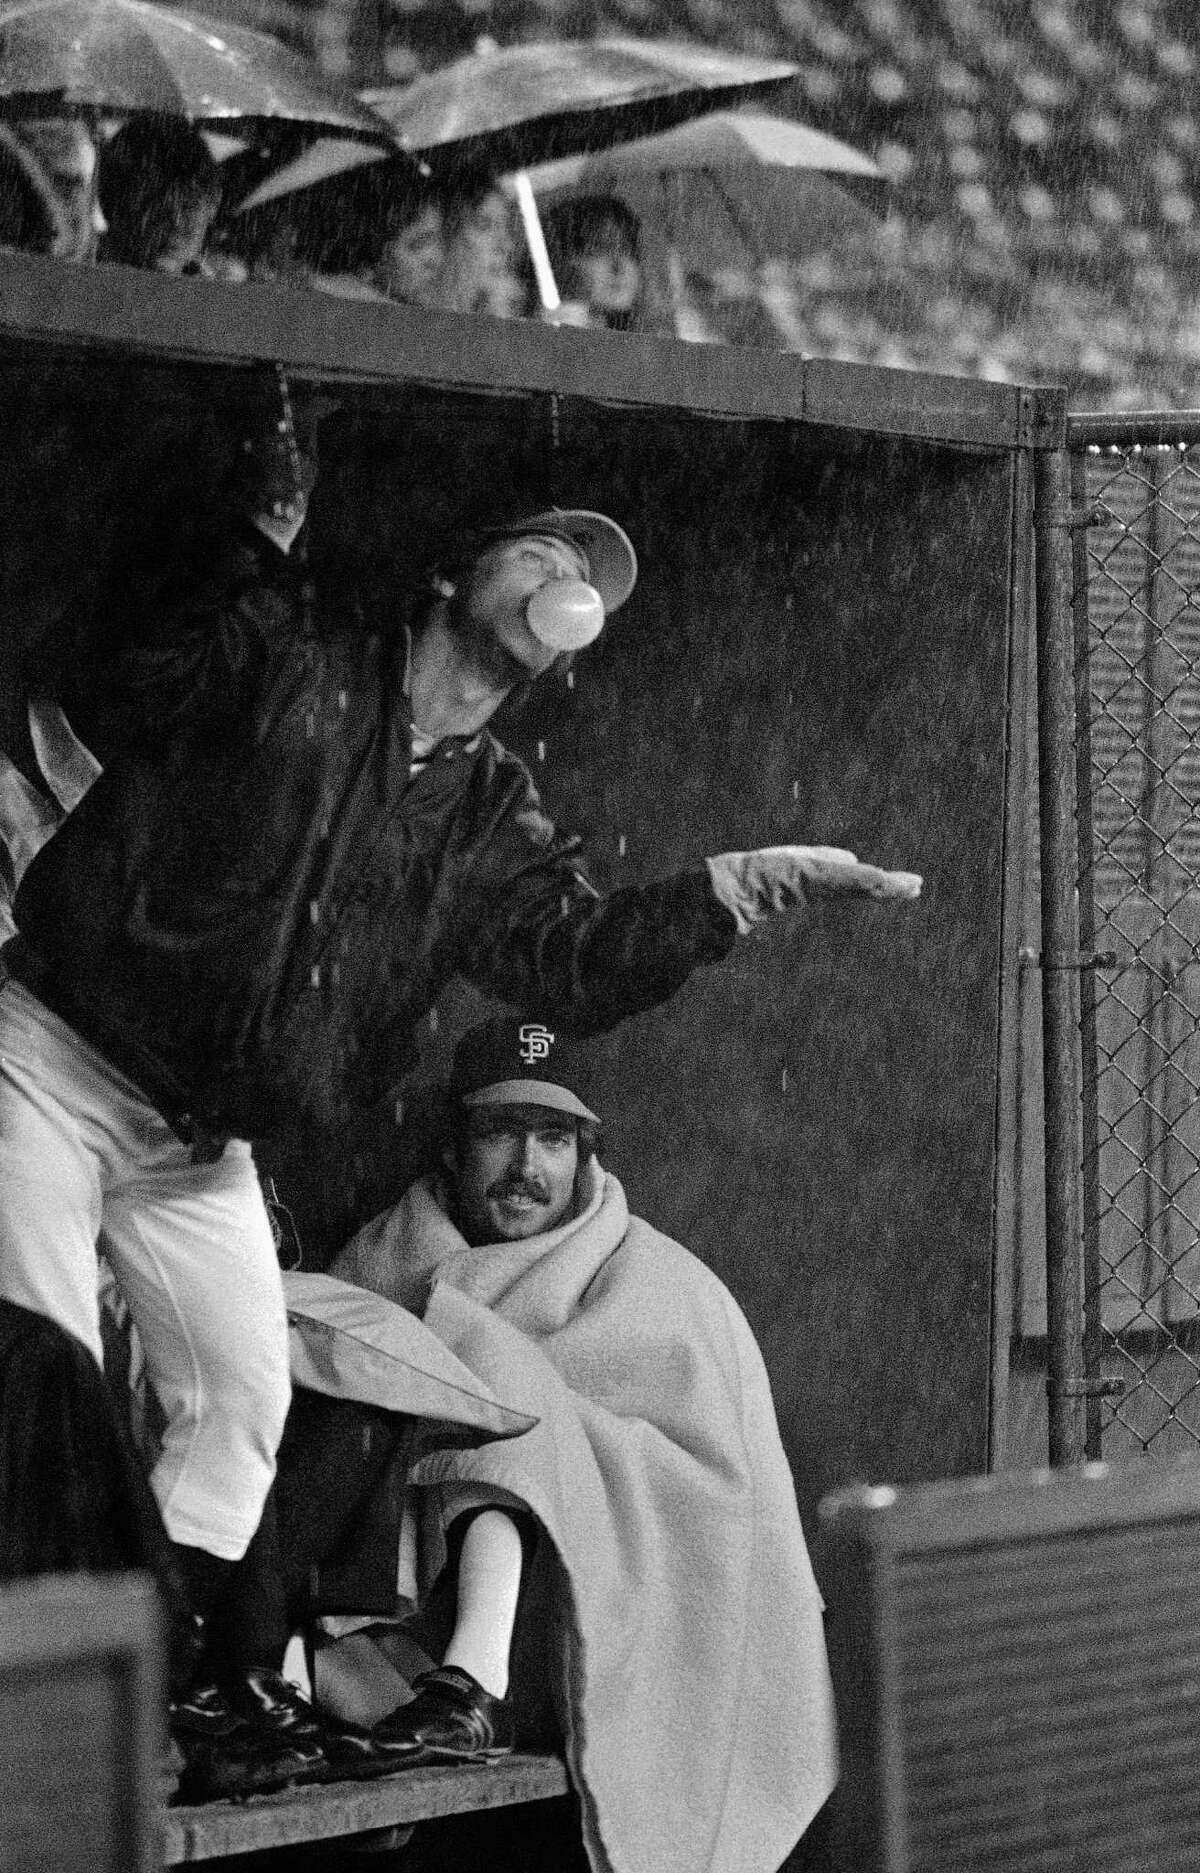 San Francisco Giants catcher Mike Sadek checks the weather as teammate Greg Minton chooses to keep warm under a blanket as the Giants sat out a rain delay before a game with the Reds in Cincinnati at night on Tuesday, April 15, 1980.